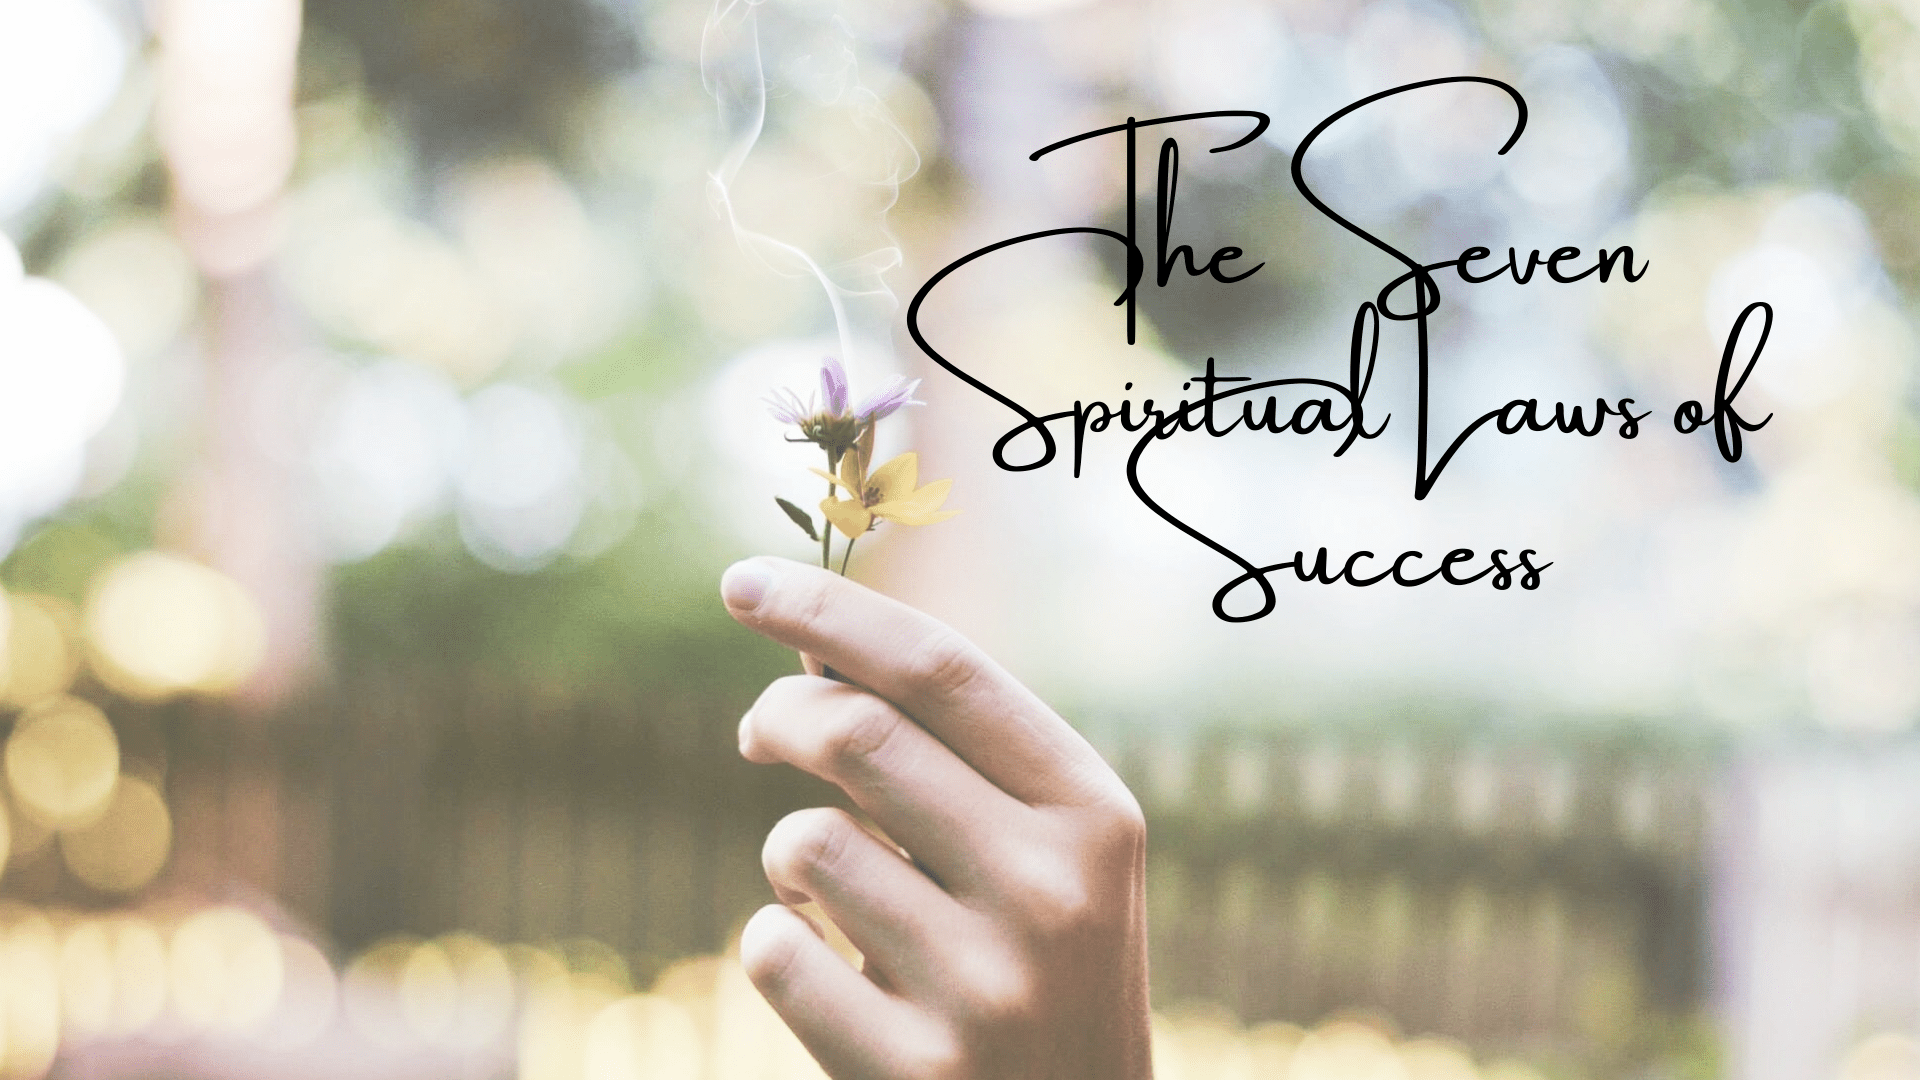 Spiritual Laws of Success: 7 Ways to Sharpen Your Brain